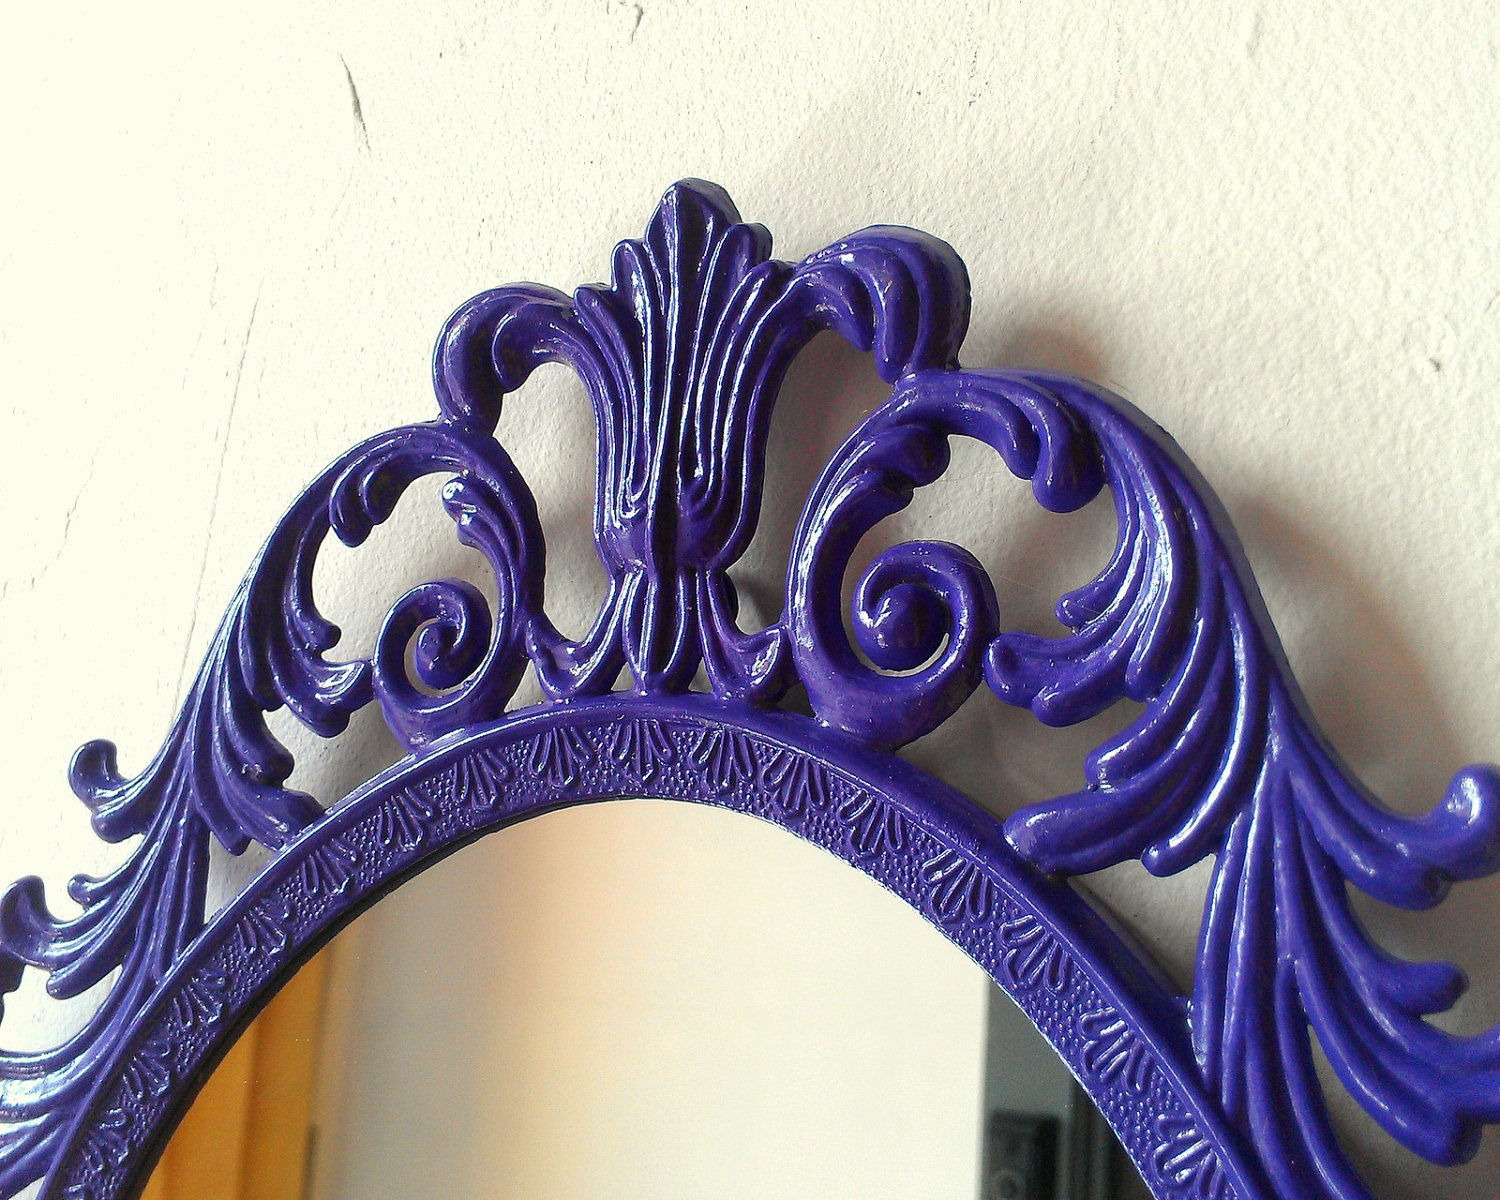 Details about brass photo frame vintage ornate oval frame victorian - Fairy Princess Mirror Ornate Vintage Frame In Purple Pansy